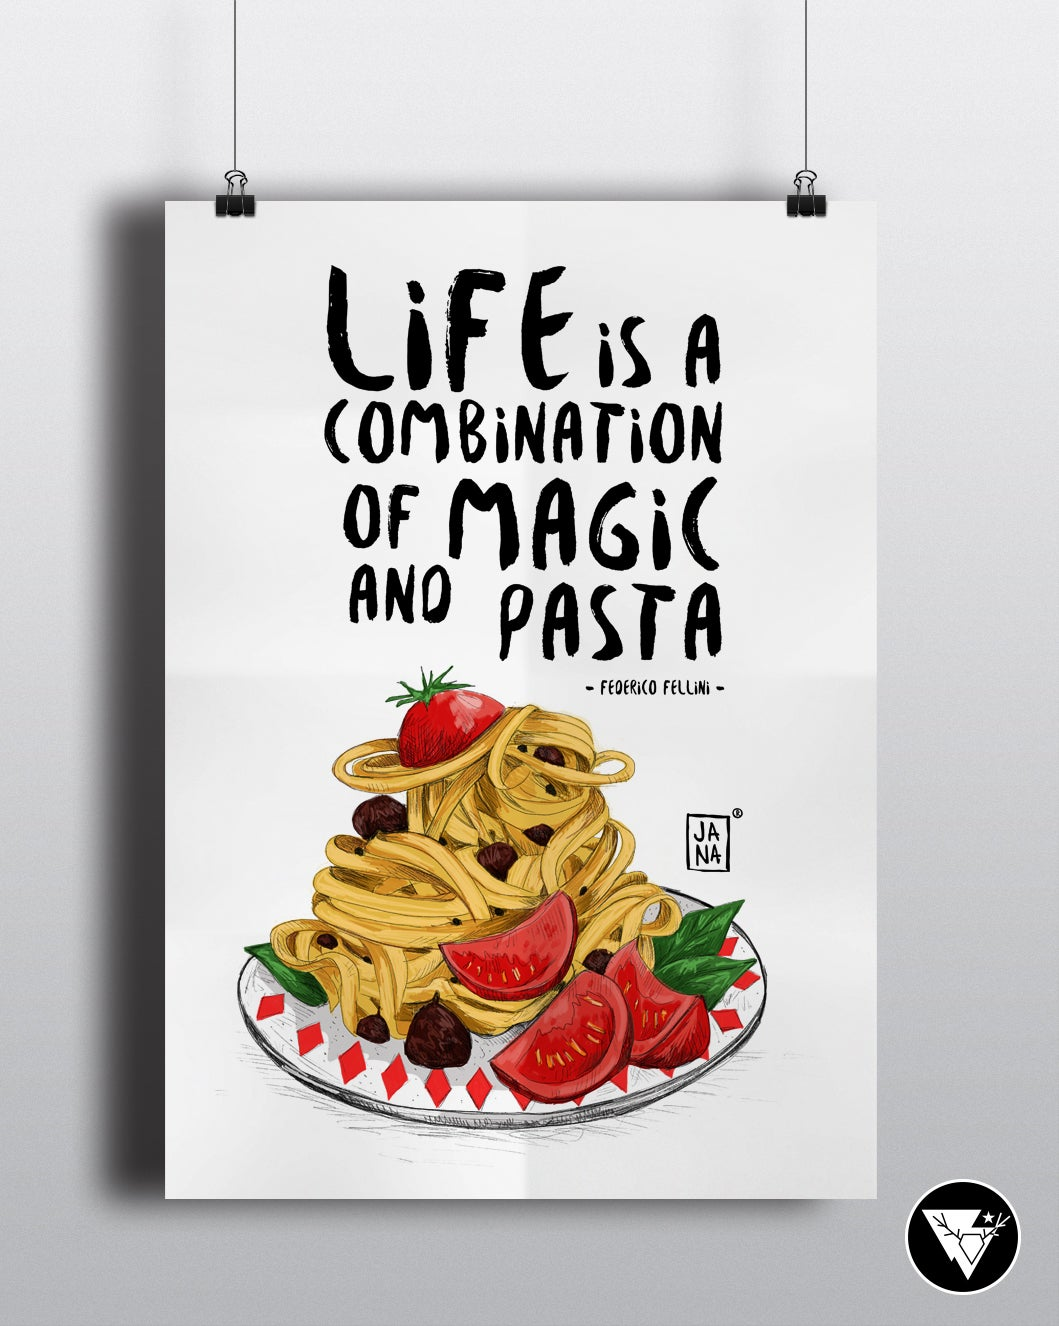 Image of Magic pasta